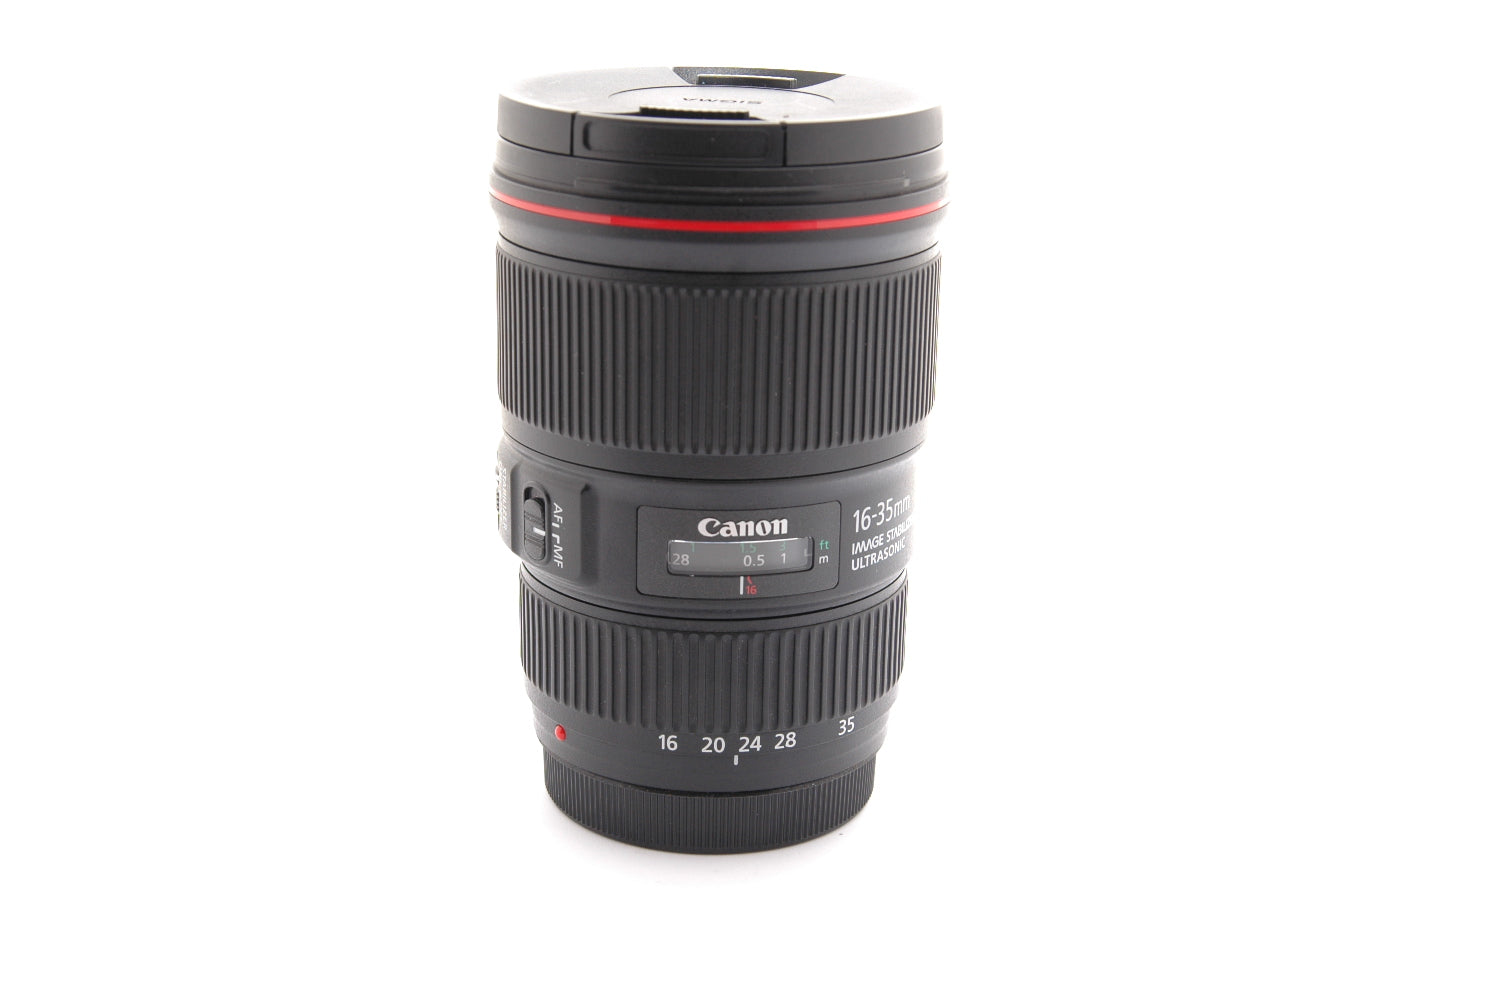 Used Canon EF 16-35mm f/4 L IS USM Lens